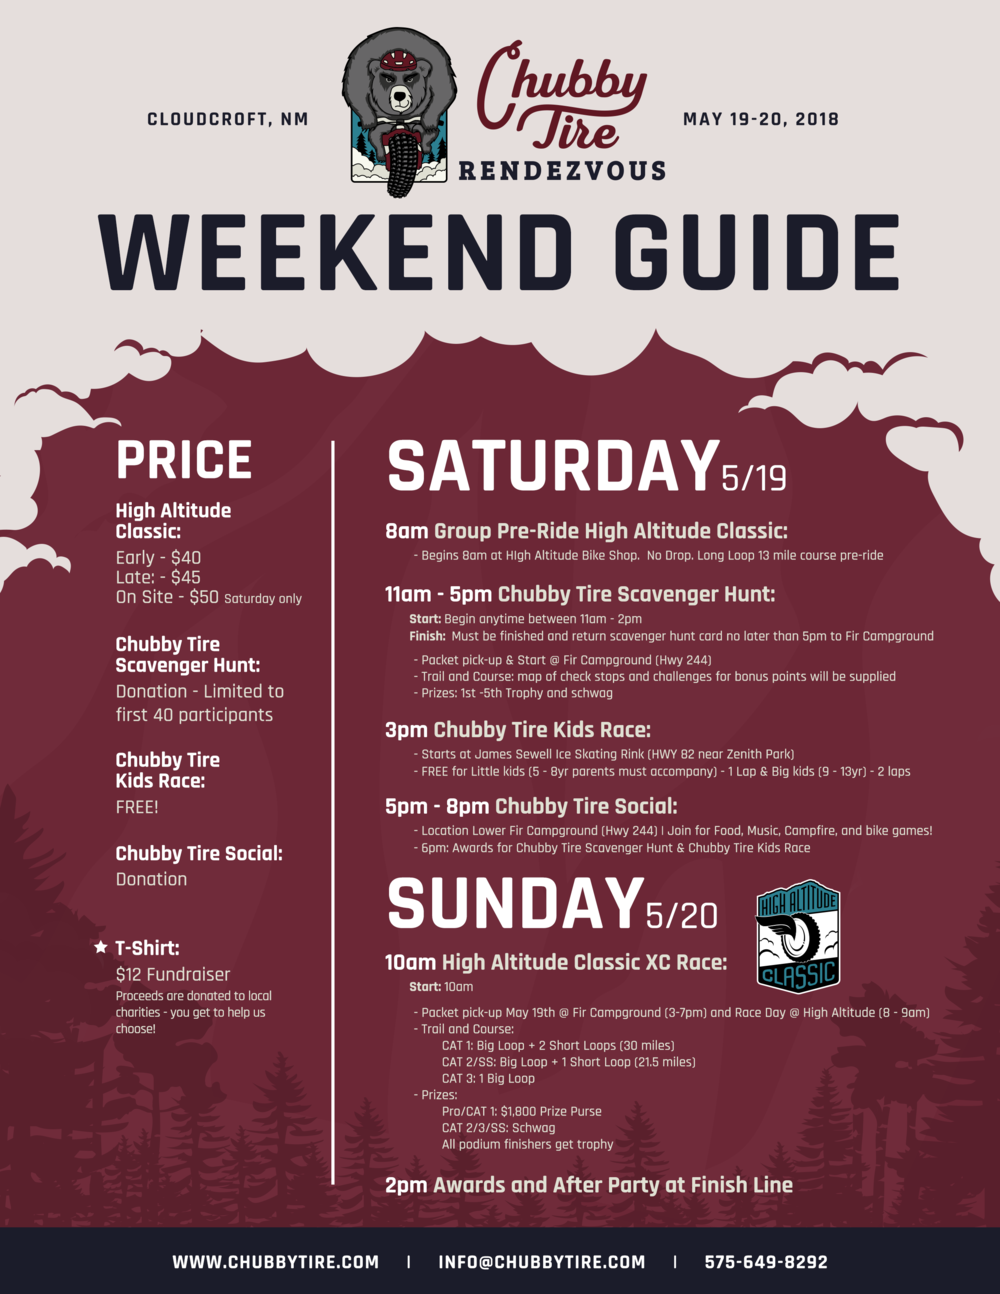 Chubby-Tire-Rendezvous-Weekend-Guide-2018.png